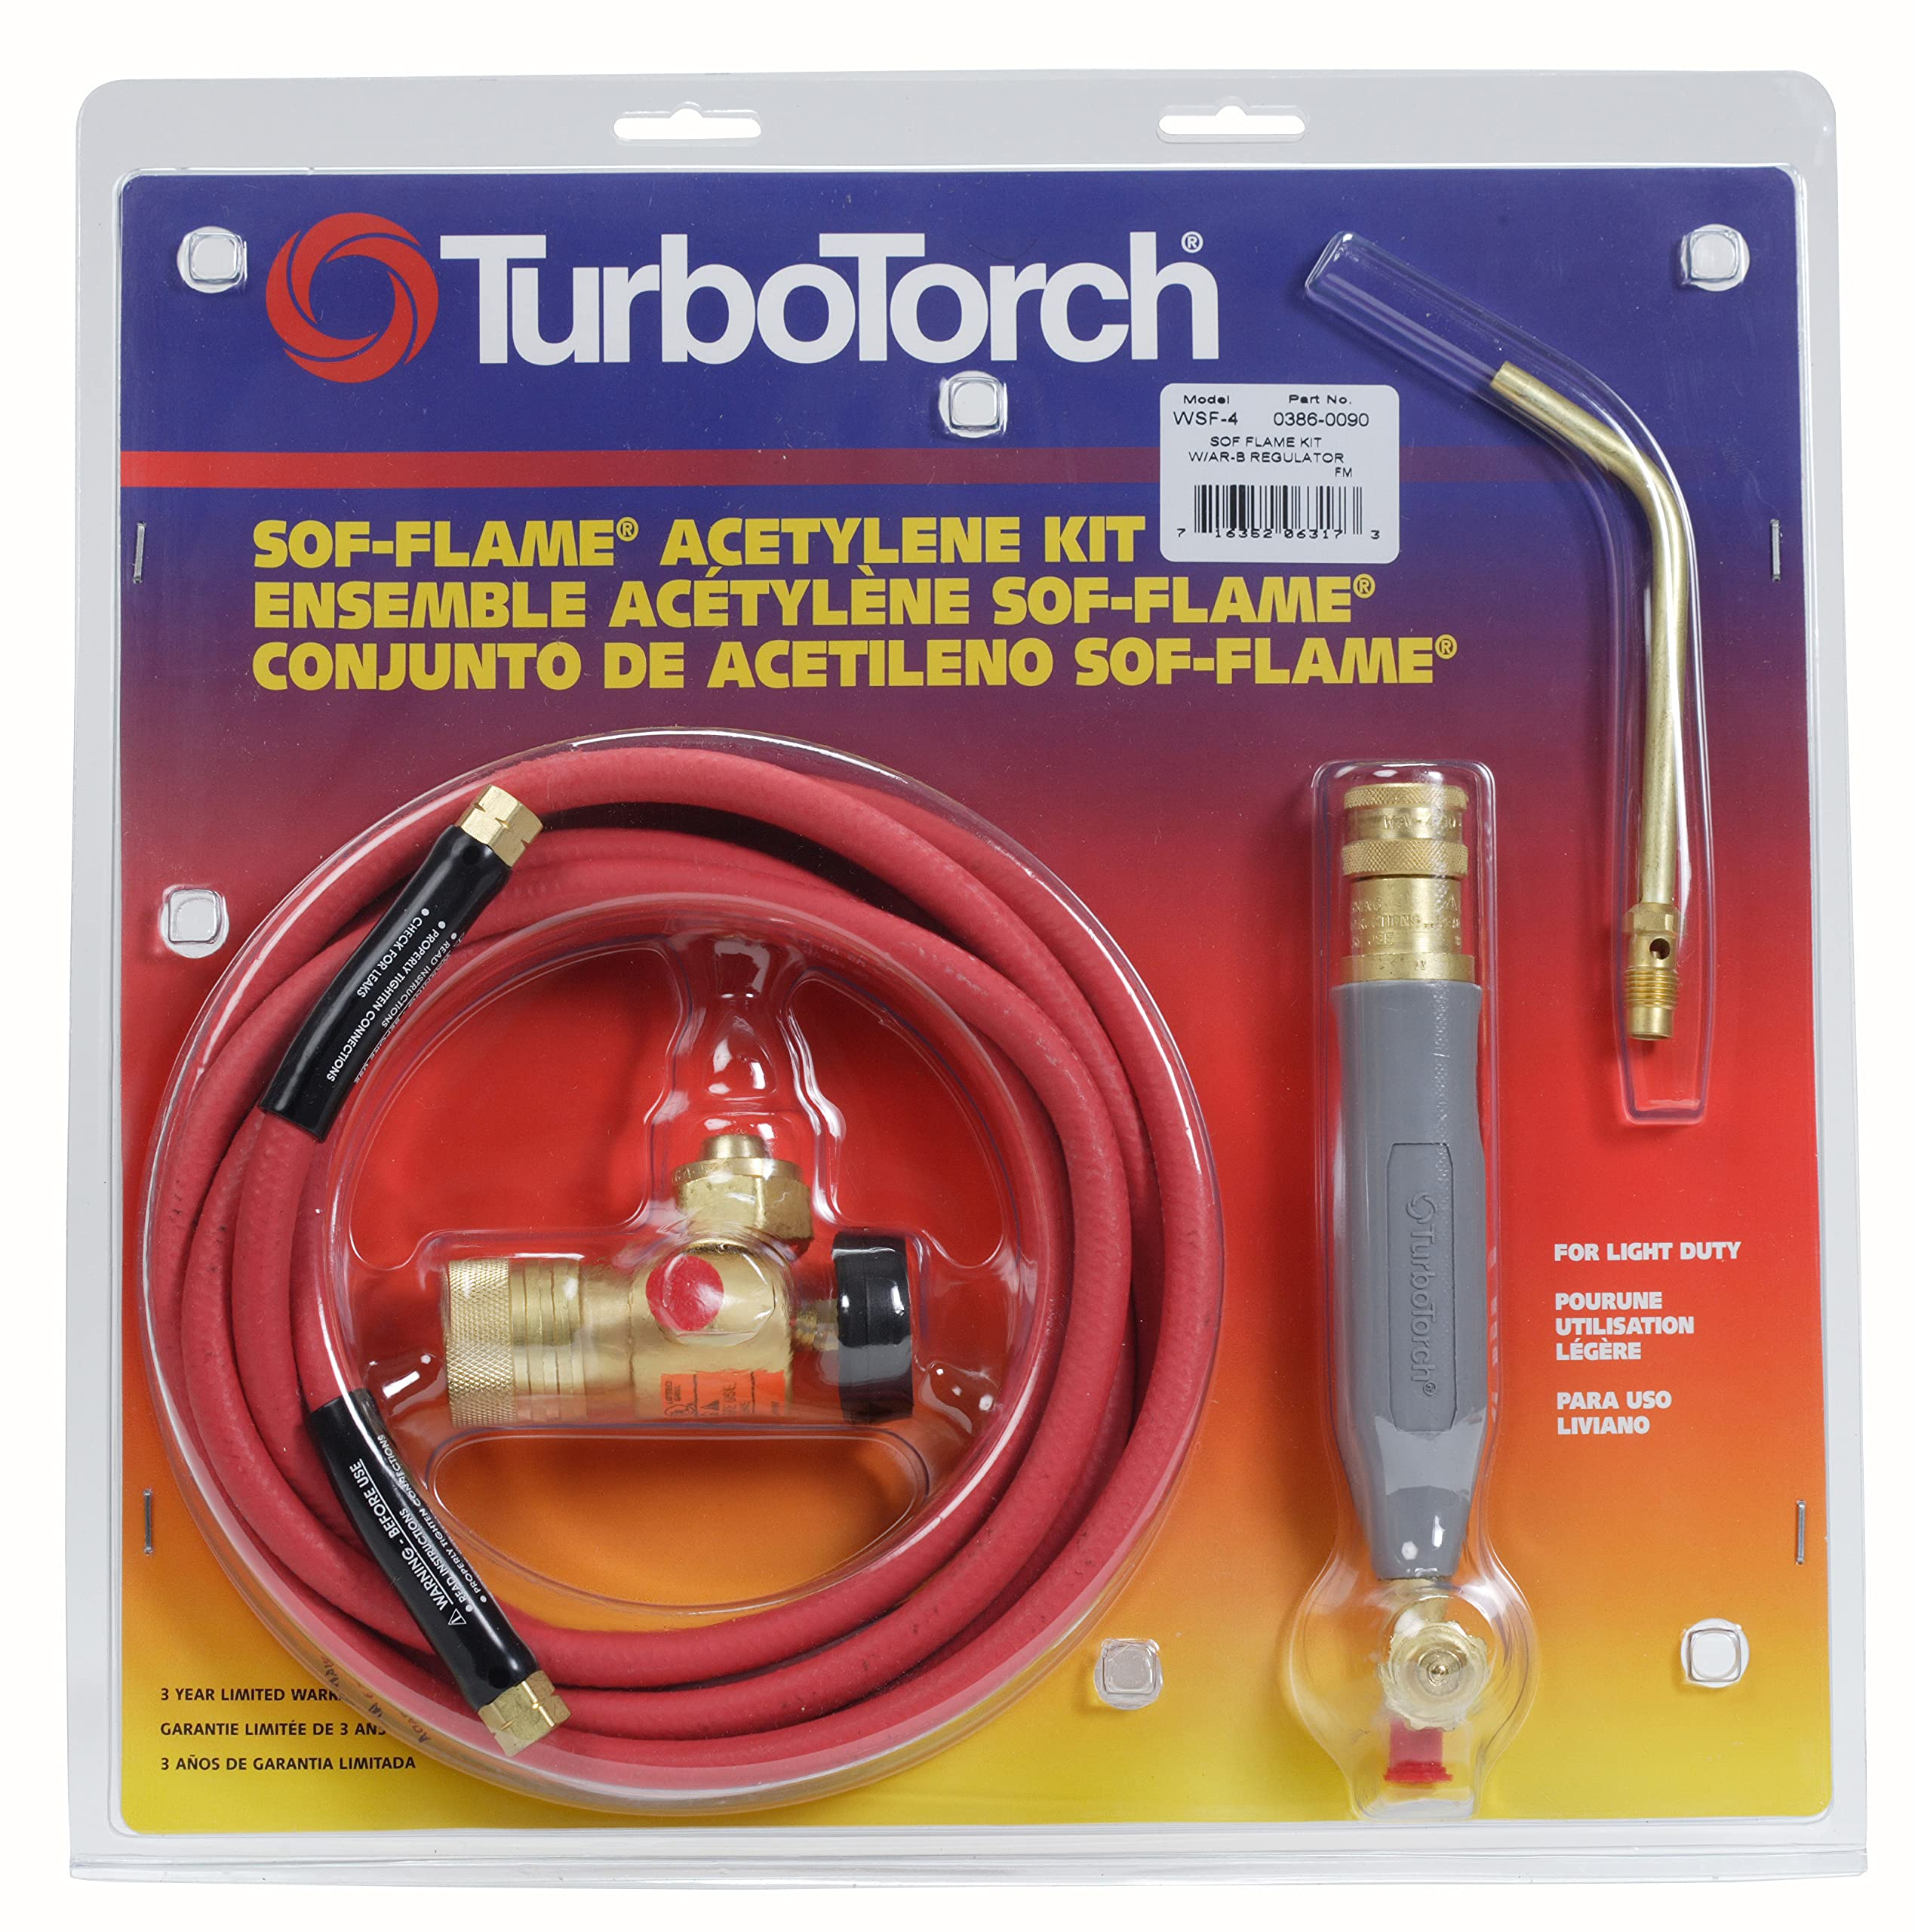 TurboTorch 0386-0090 WSF-4 Torch Kit Sof-Flame, for B tank, Air Acetylene